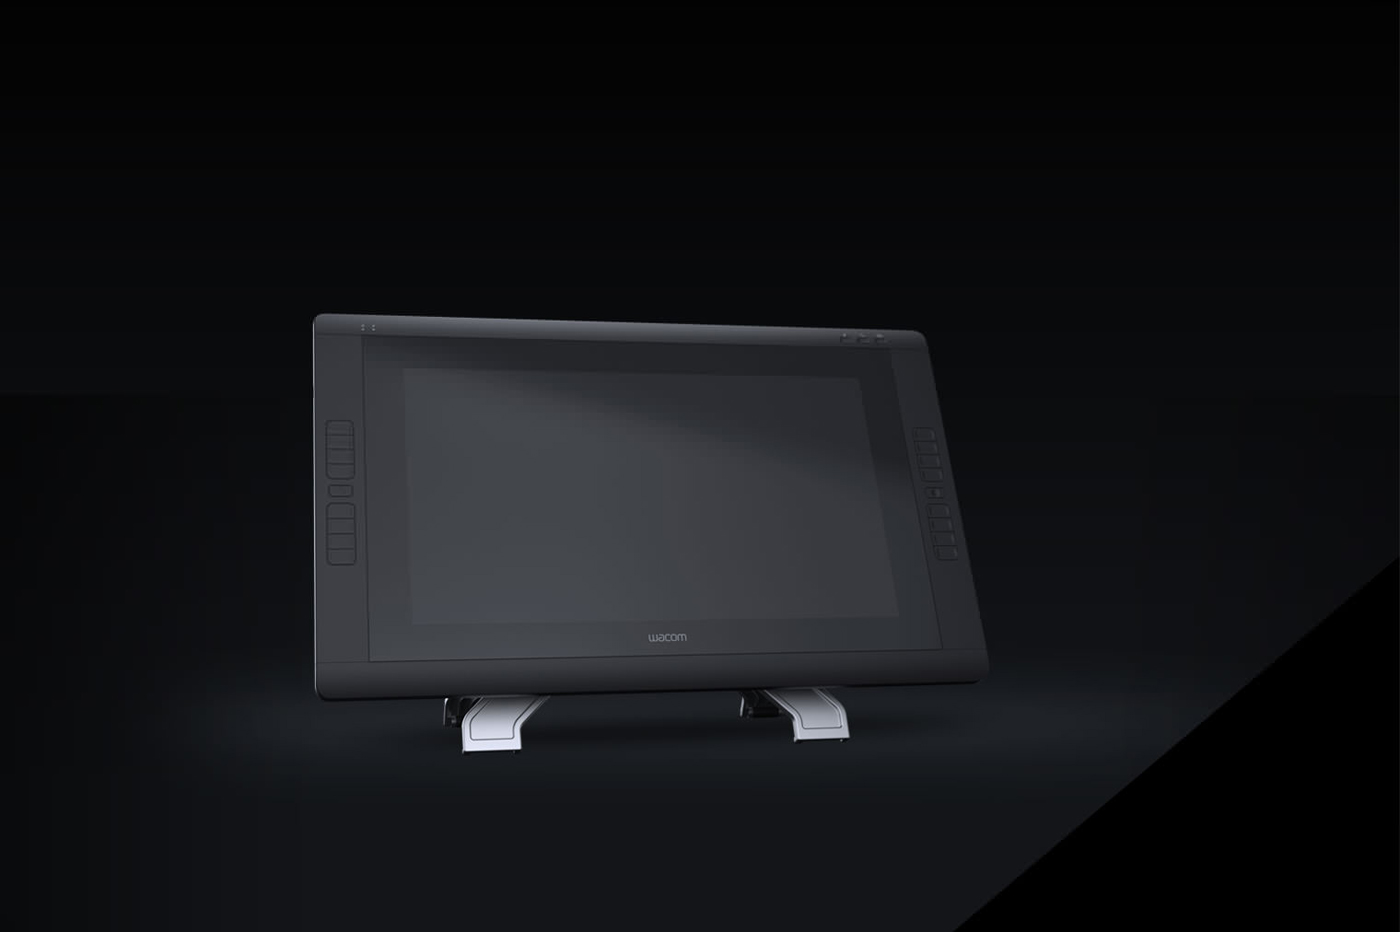 cintiq22hd-touch-3